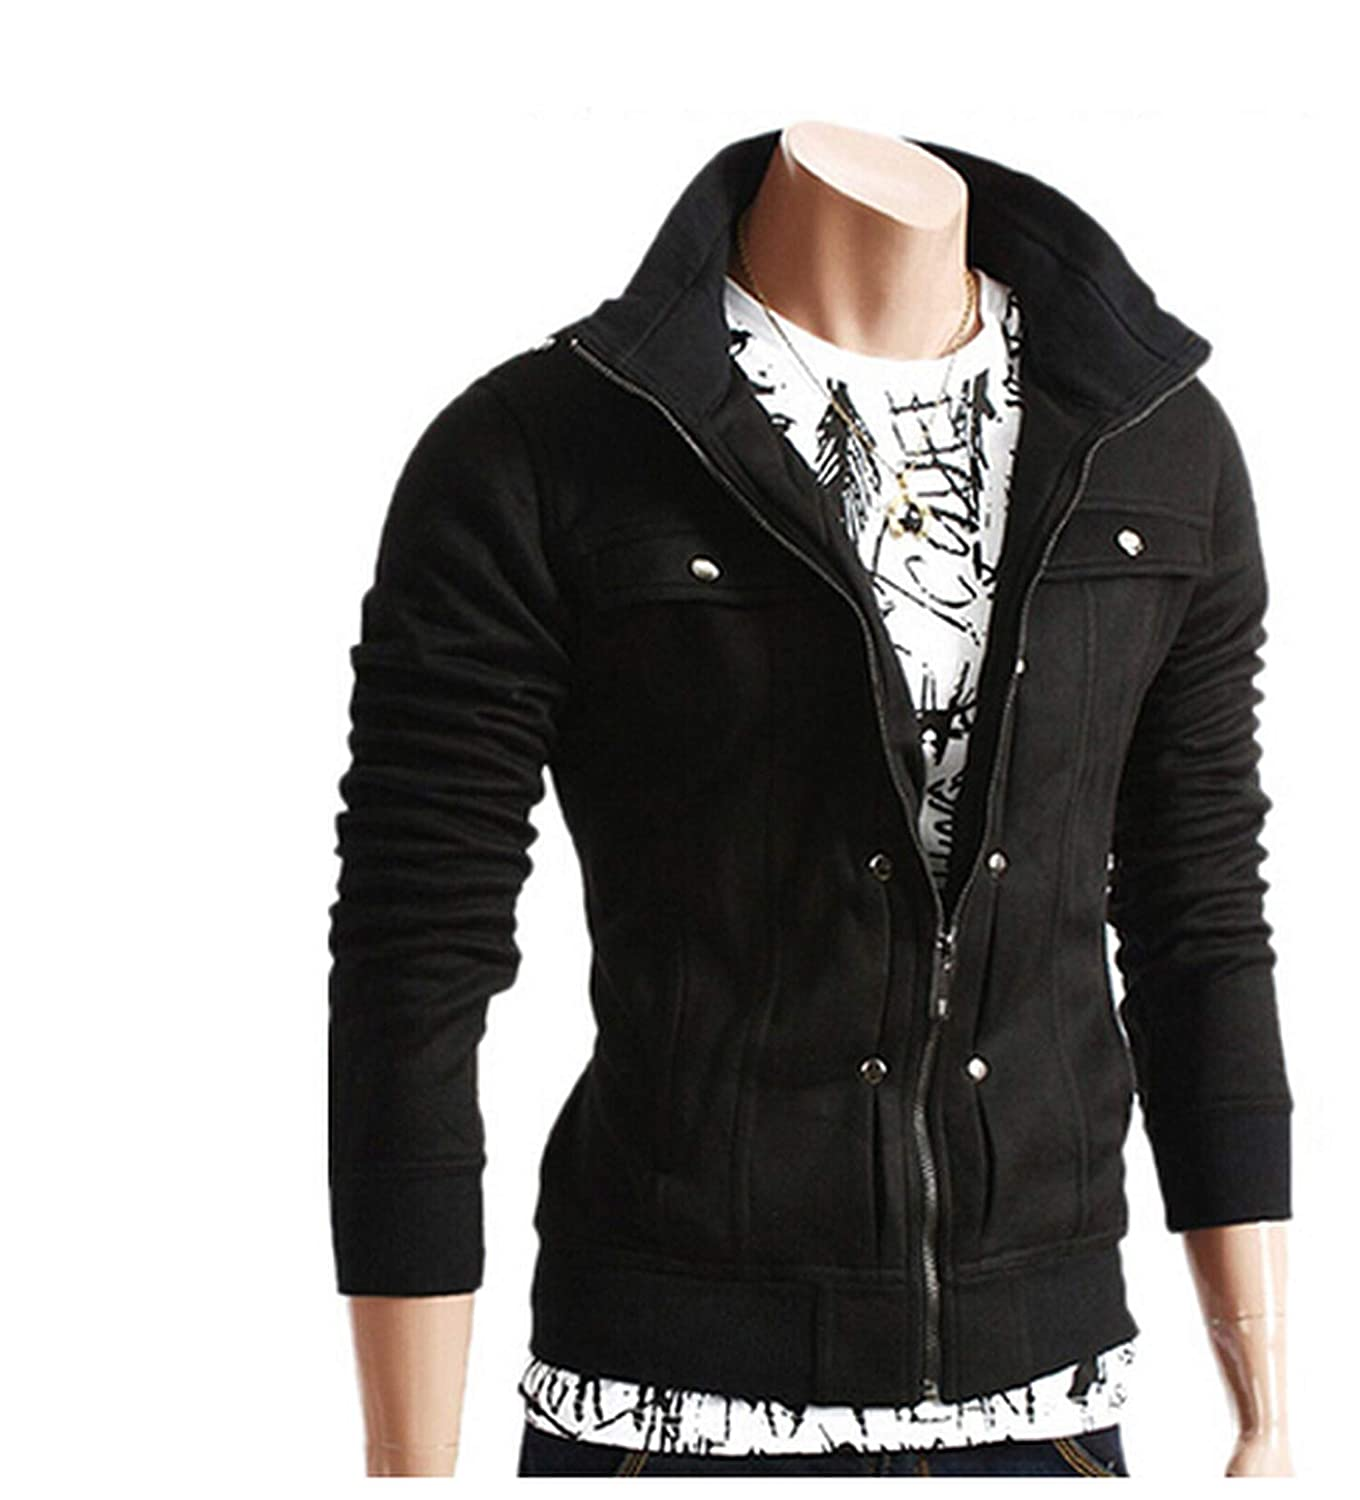 Aworth Casual Bomber Jacket Warm Stand Collar Coats and ...